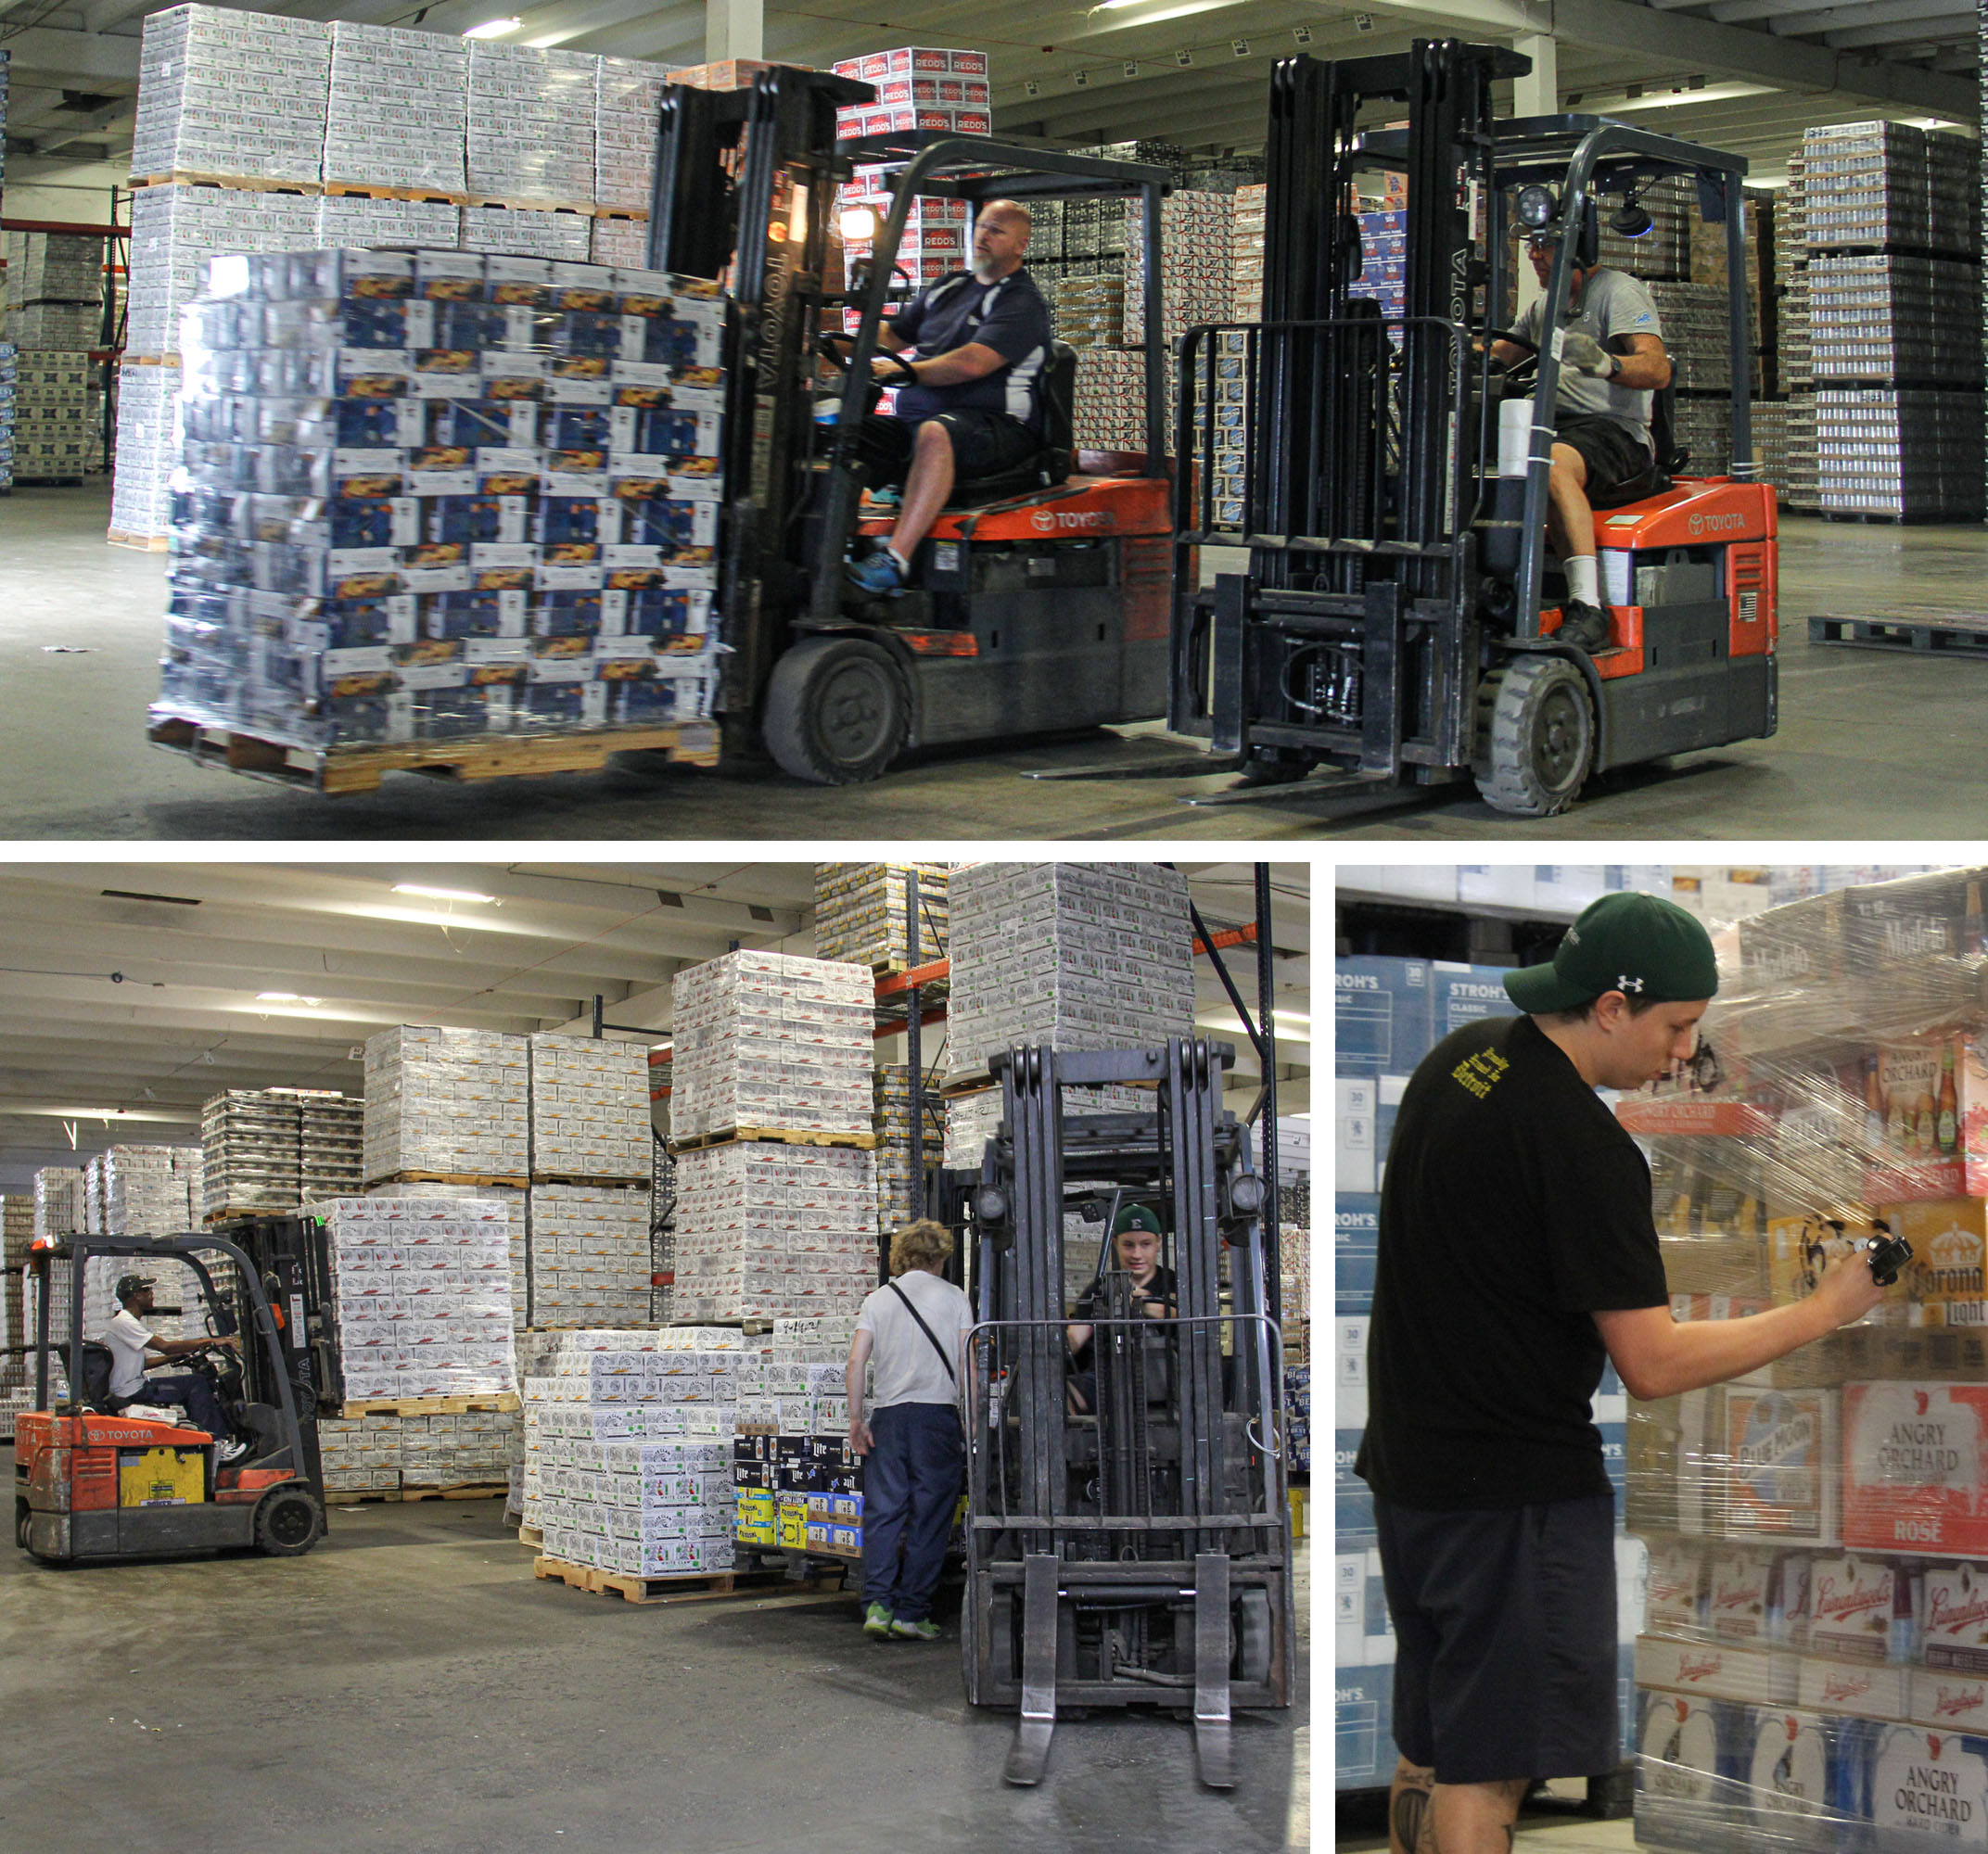 Warehouse employees working inside beer distributor